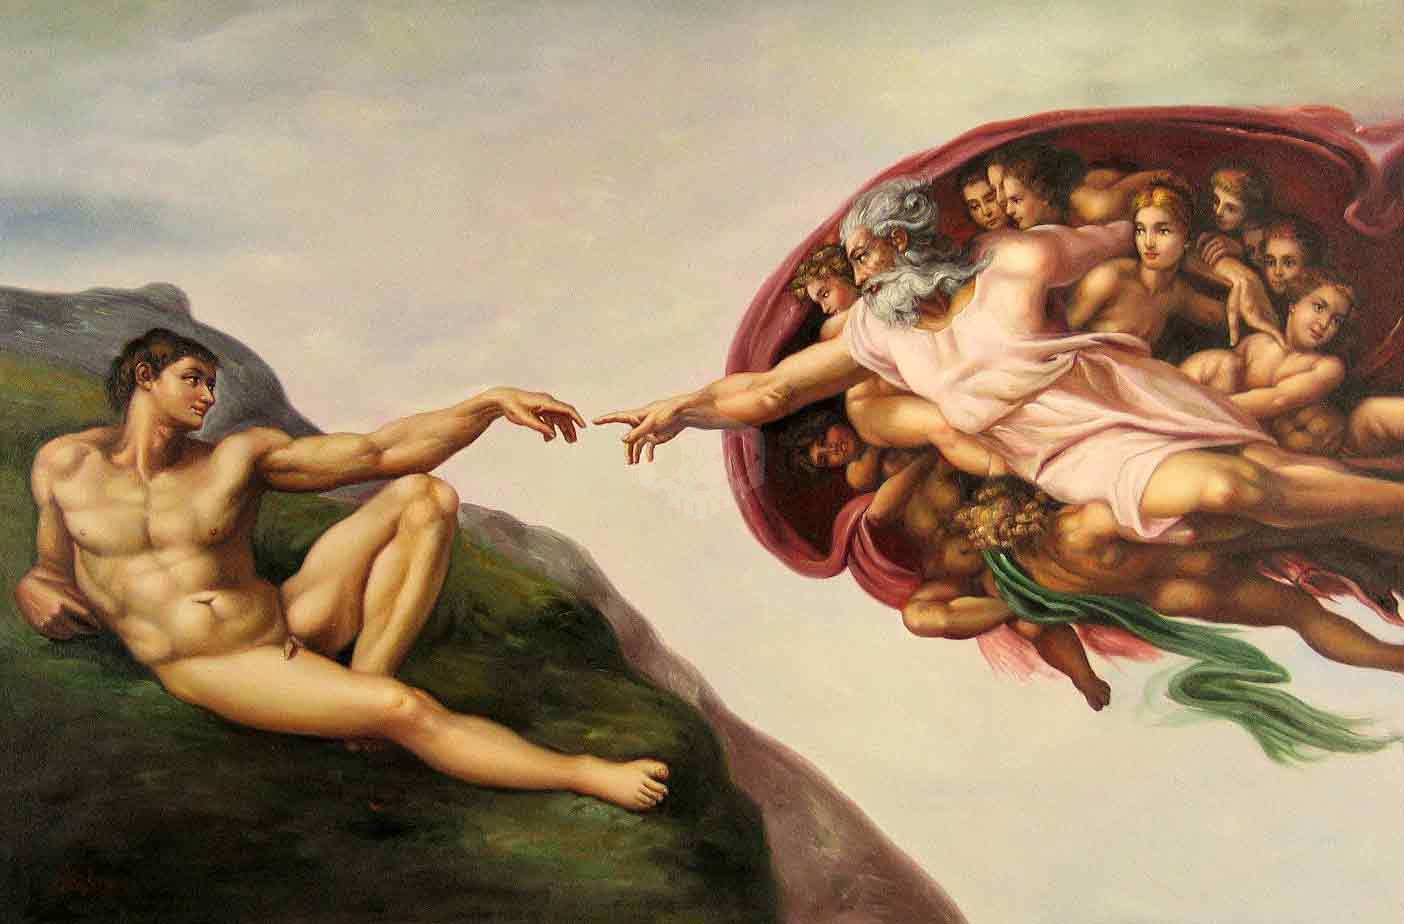 파일:external/www.prlog.org/11409306-the-creation-of-adam.jpg